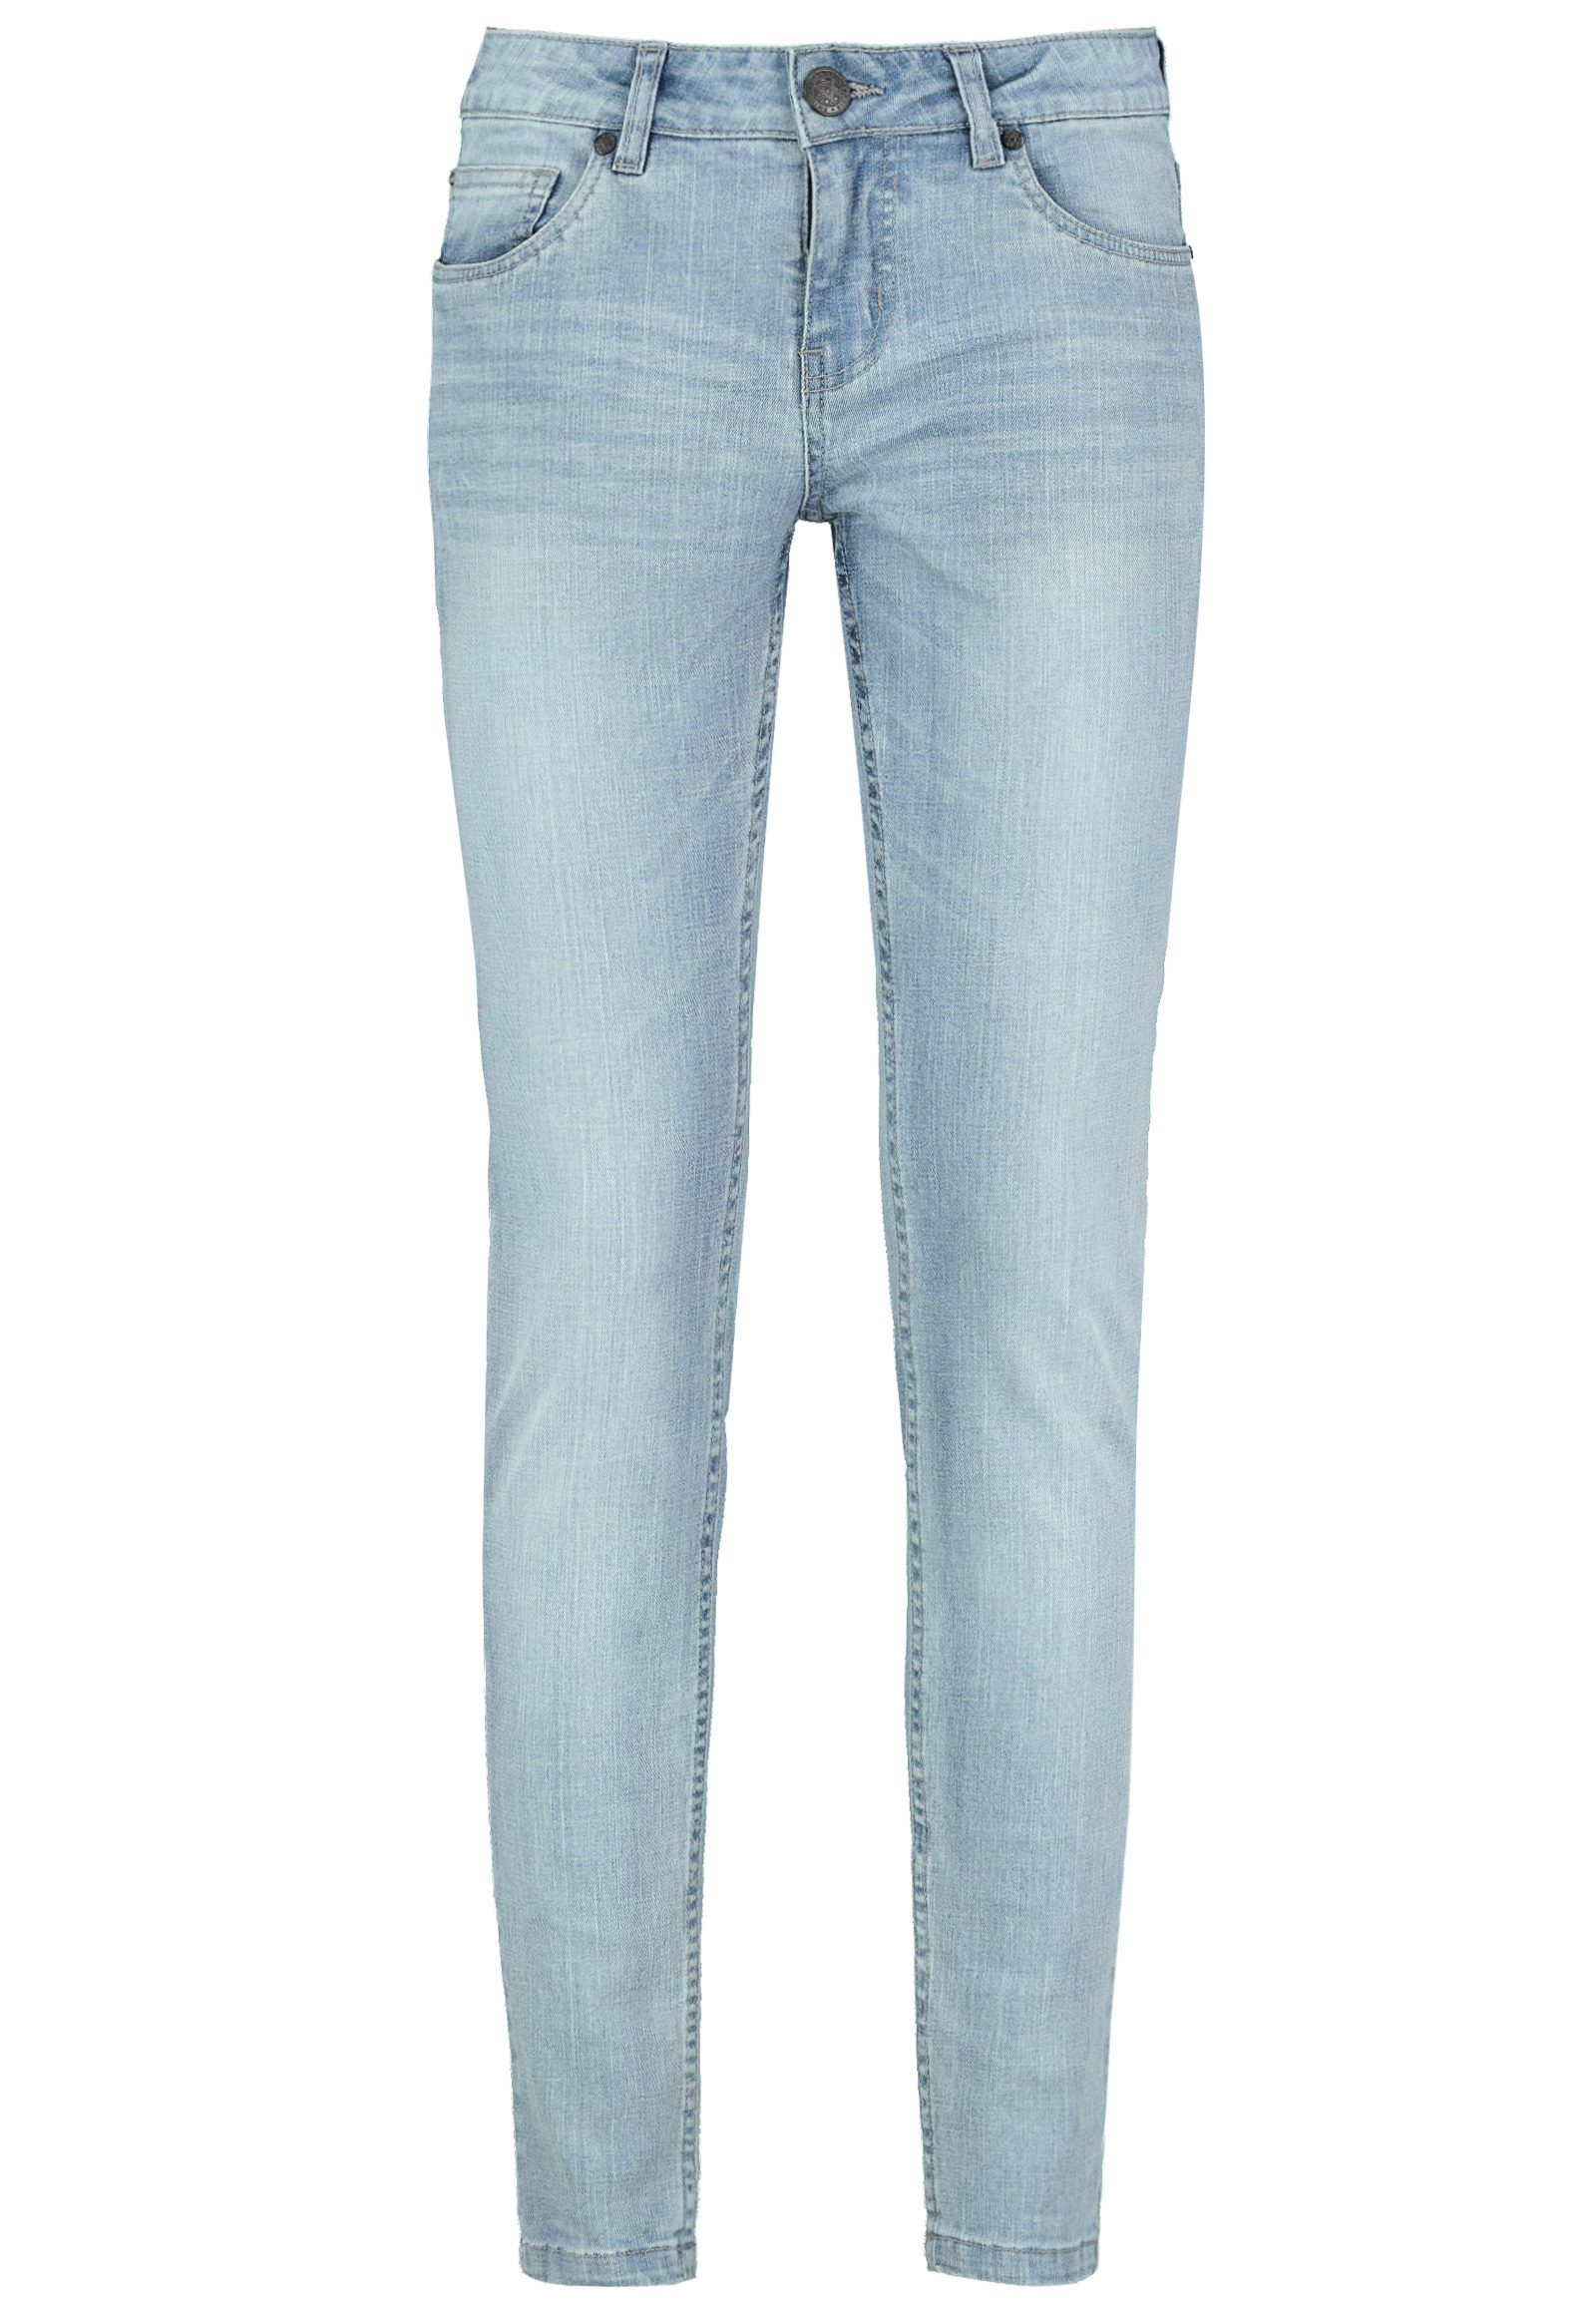 Hosen - Basic Skinny Jeans › Eight2Nine › blau  - Onlineshop FASHION5